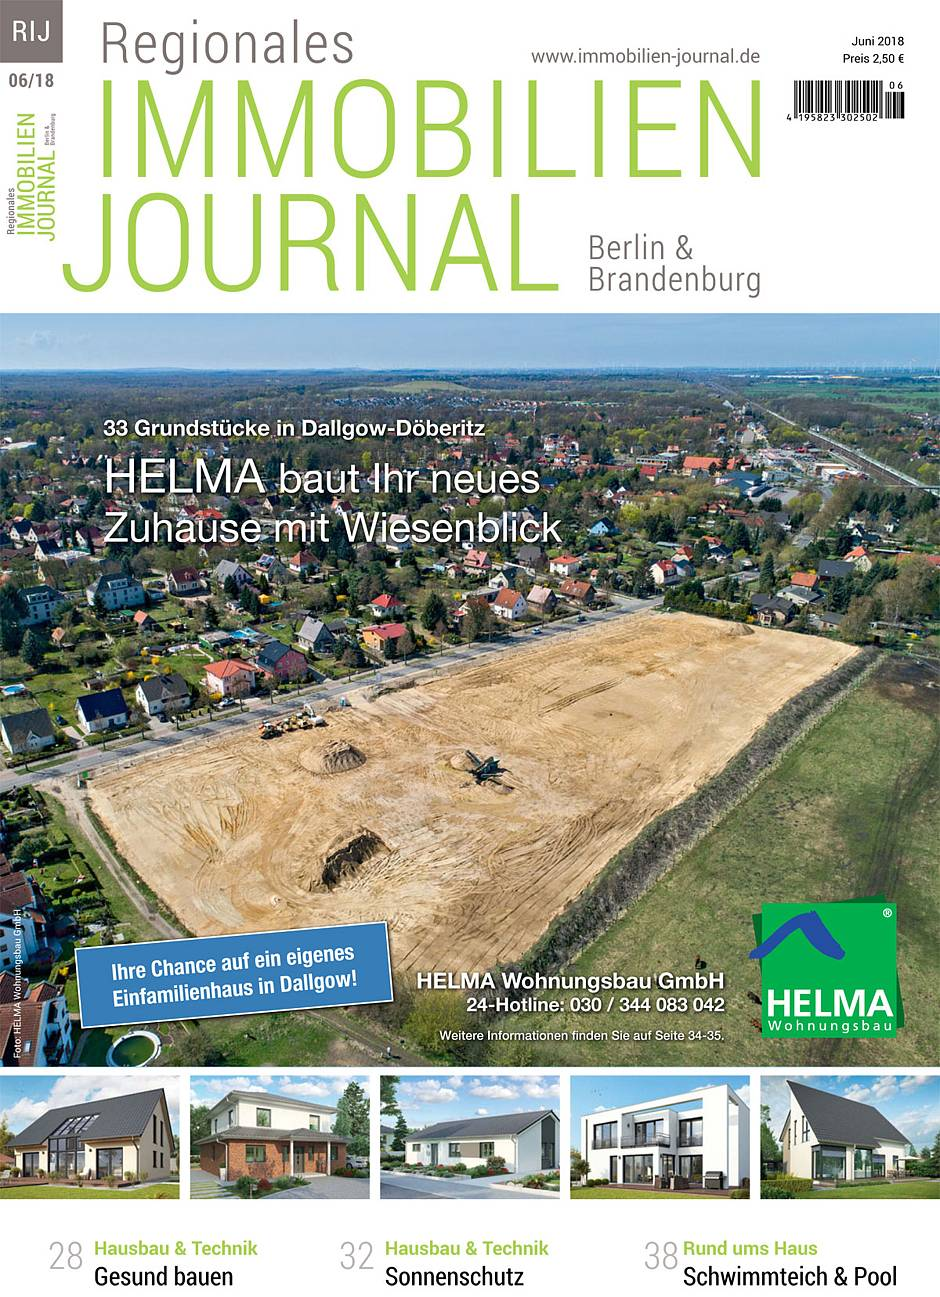 Regionales Immobilien Journal Berlin & Brandenburg Juni 2018